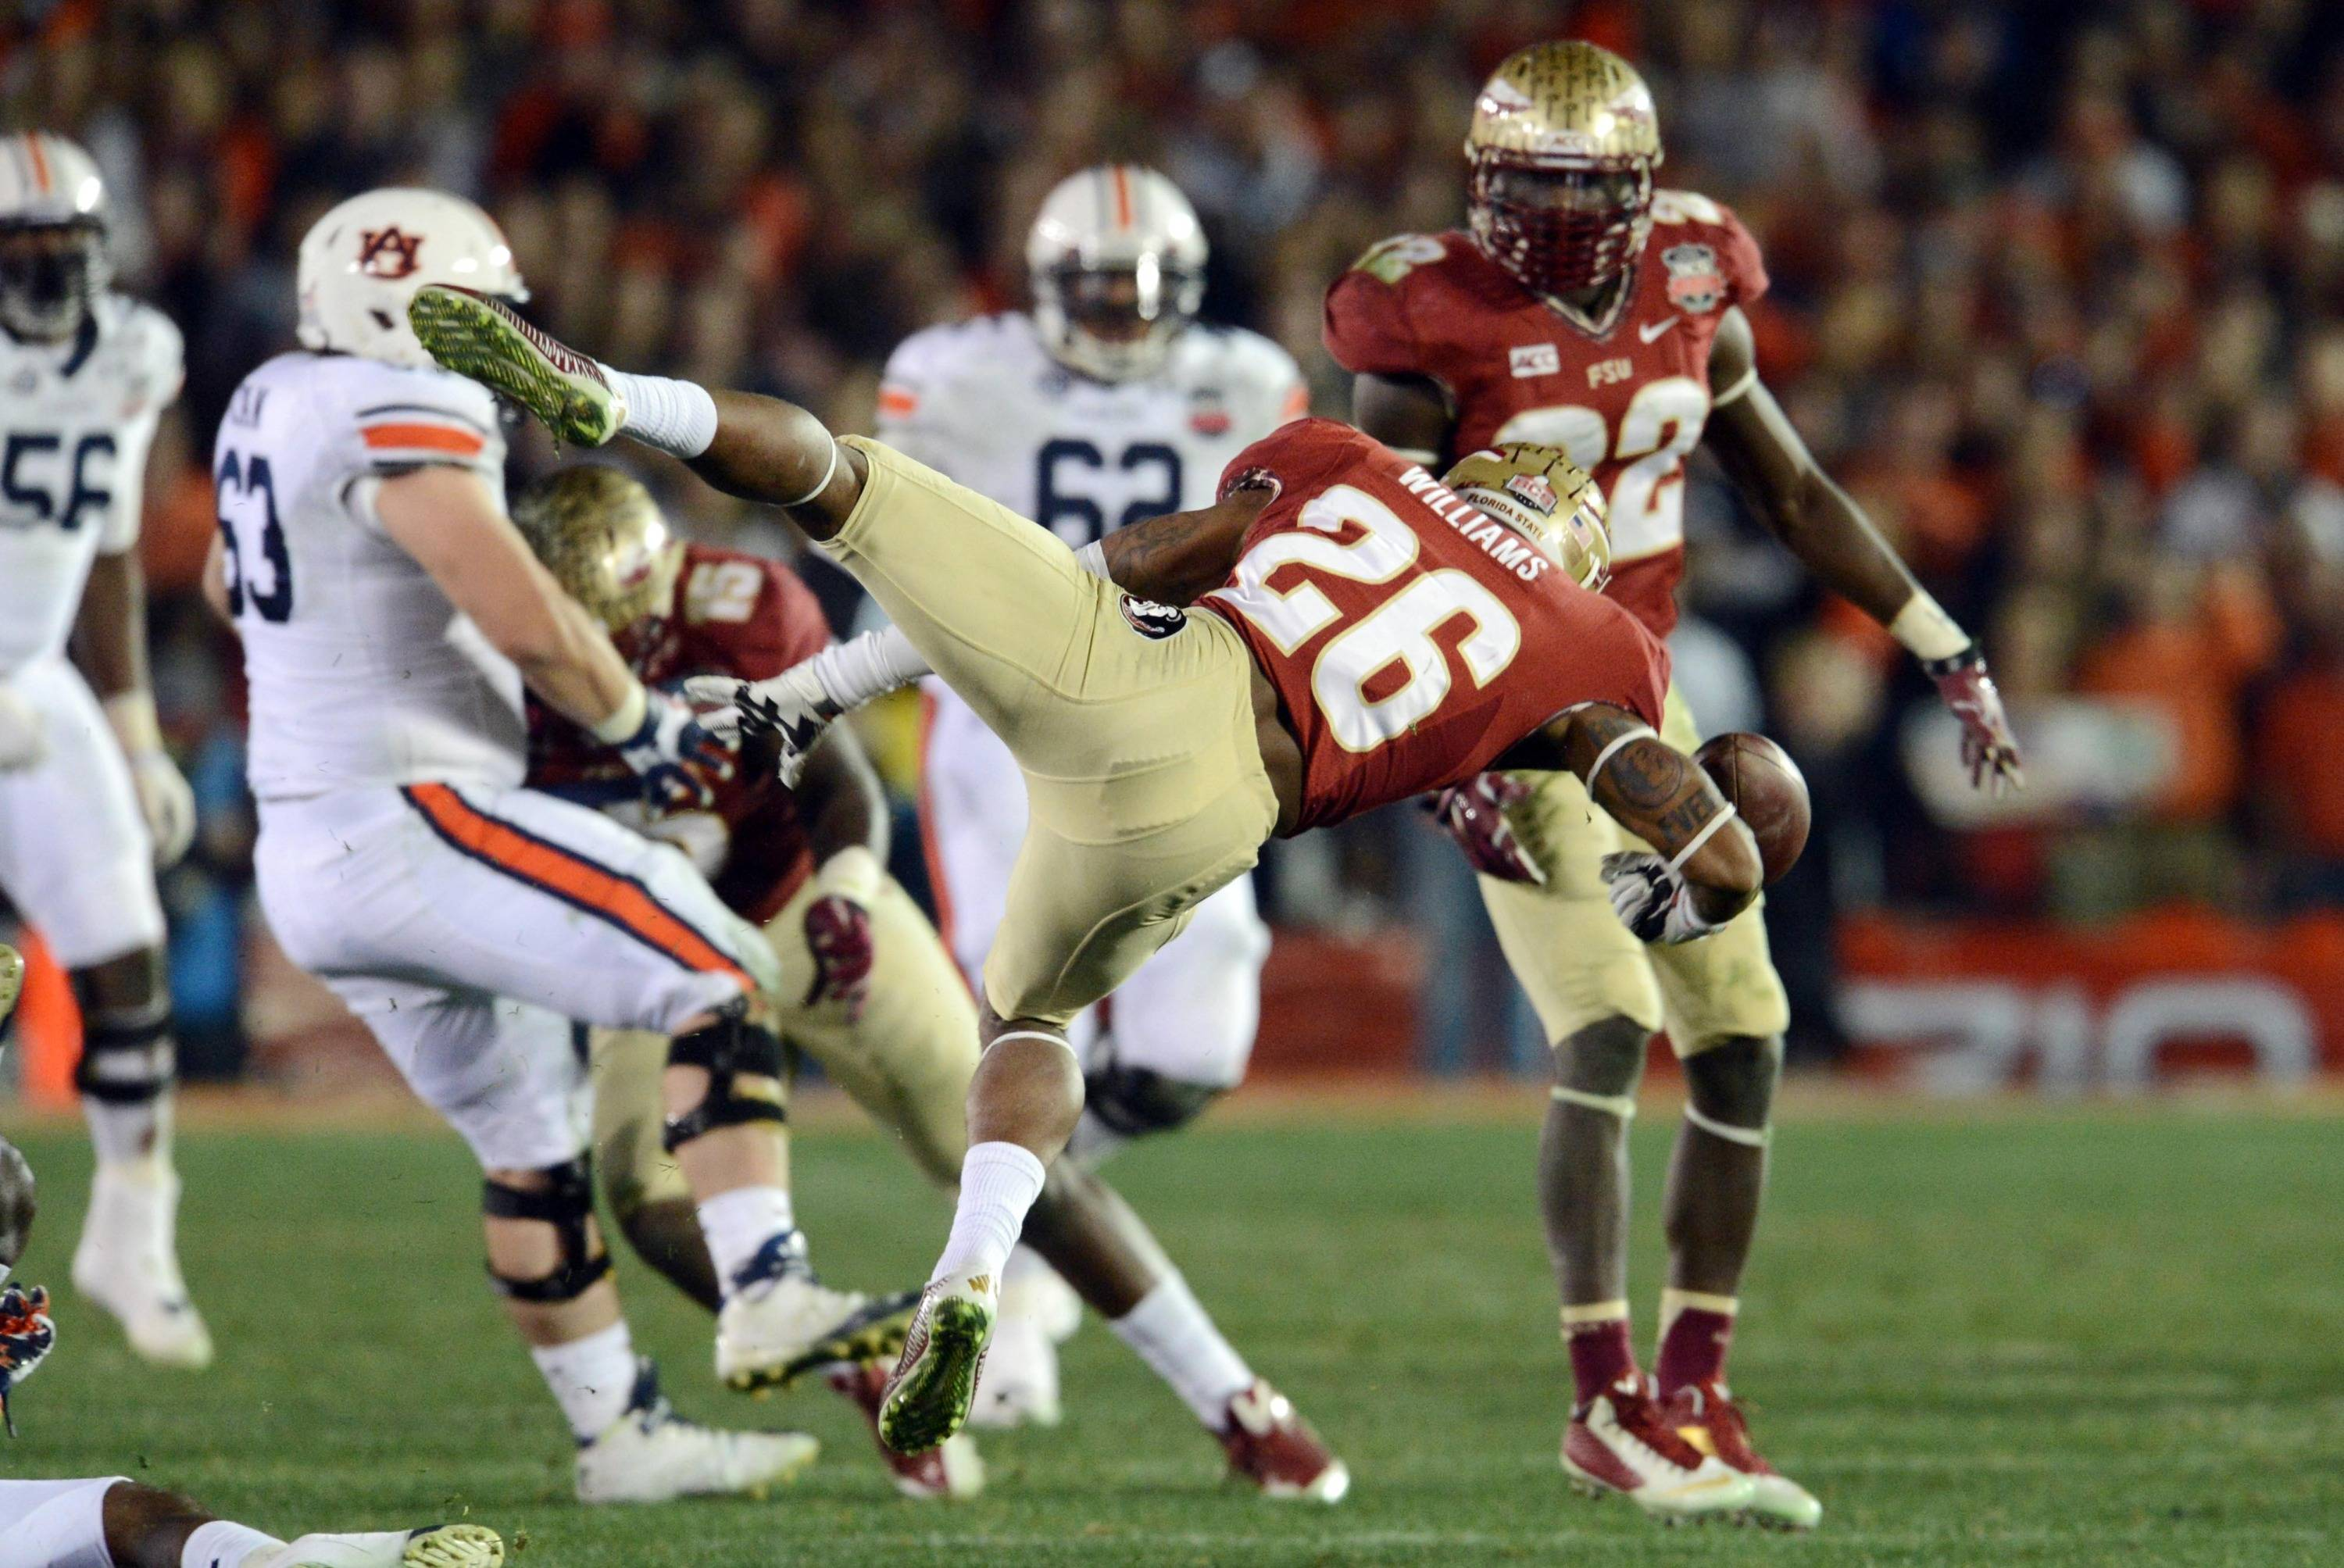 Jan 6, 2014; Pasadena, CA, USA; Florida State Seminoles defensive back P.J. Williams (26) fumbles the ball after intercepting a pass against the Auburn Tigers during the second half of the 2014 BCS National Championship game at the Rose Bowl.  Mandatory Credit: Jayne Kamin-Oncea-USA TODAY Sports